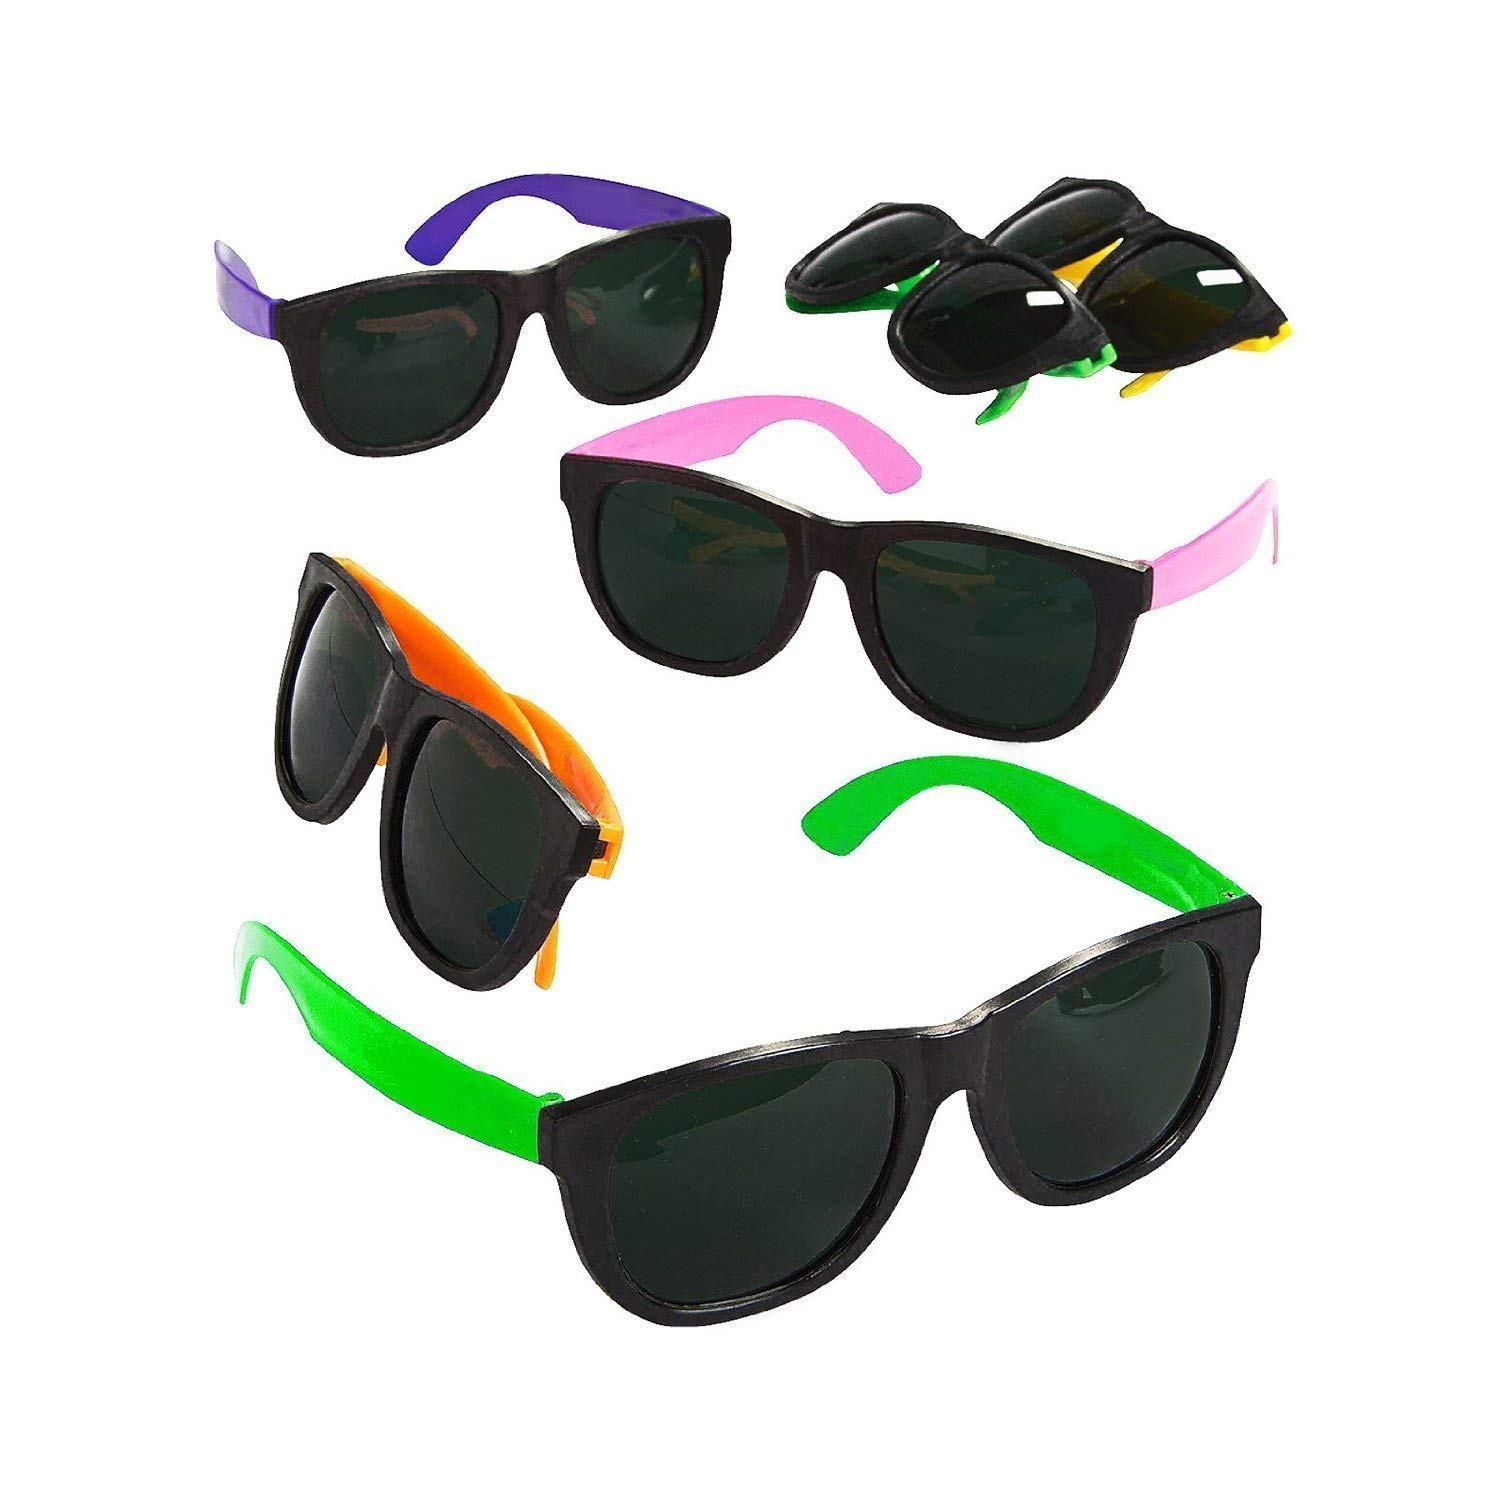 5fbbdd556e Get Quotations · Blue Green Novelty Bulk Lot of 24 Neon 80 s Style Party  Sunglasses with Dark Lens